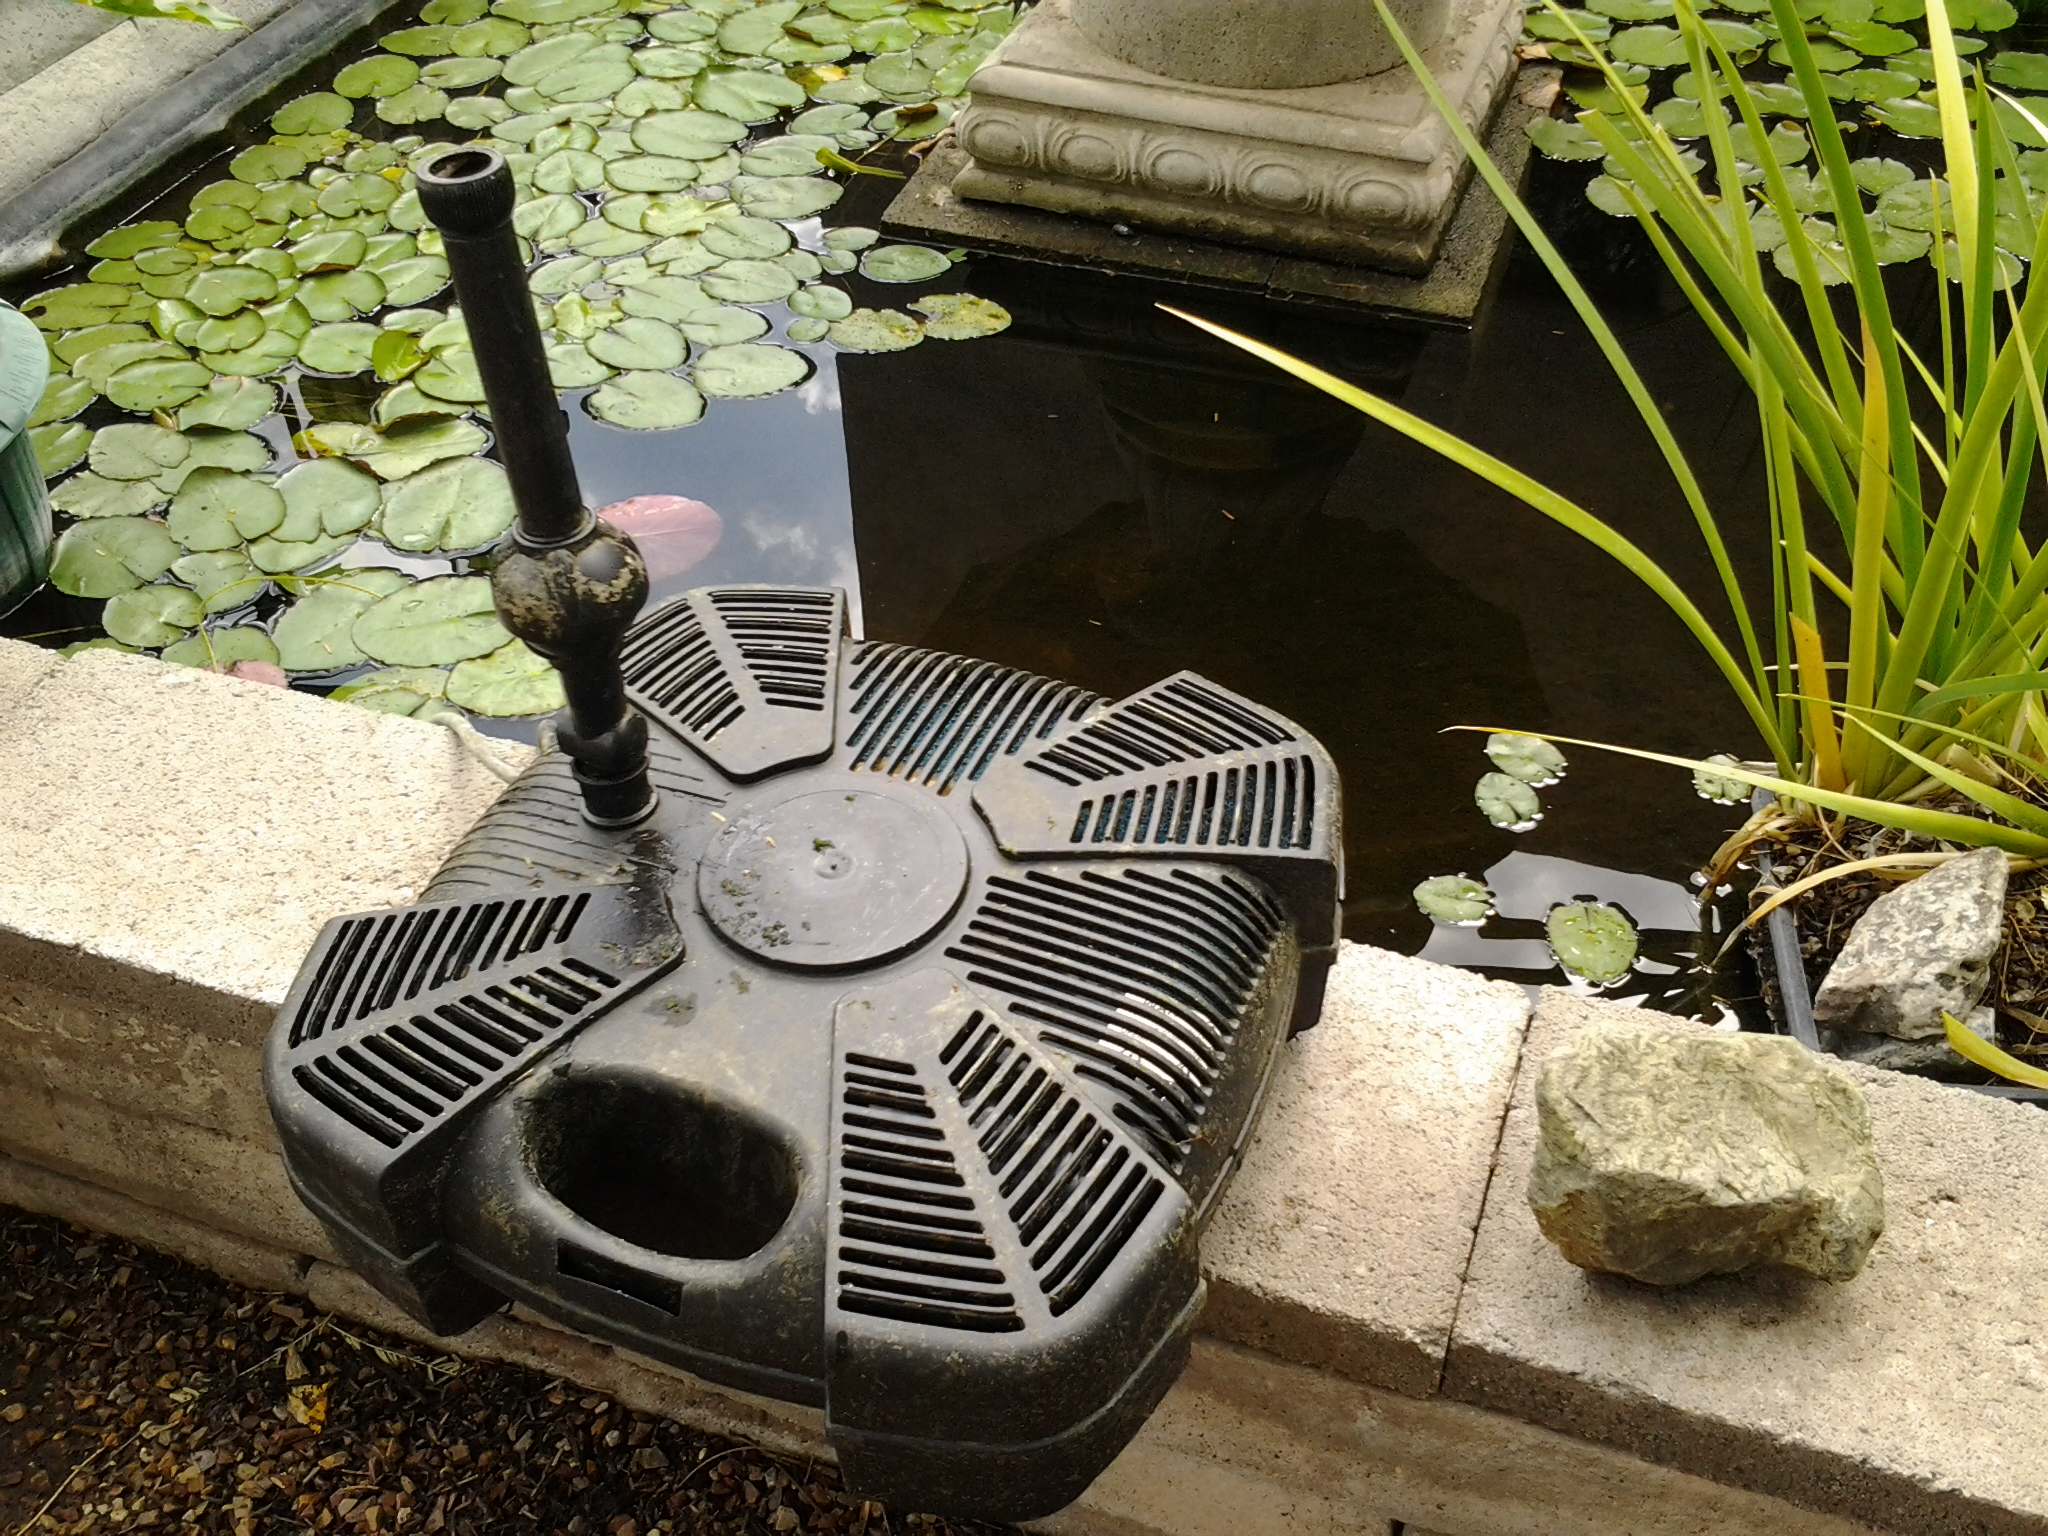 Best pond filter system all in one lifegard pump with uv for Outdoor fish pond filters and pumps